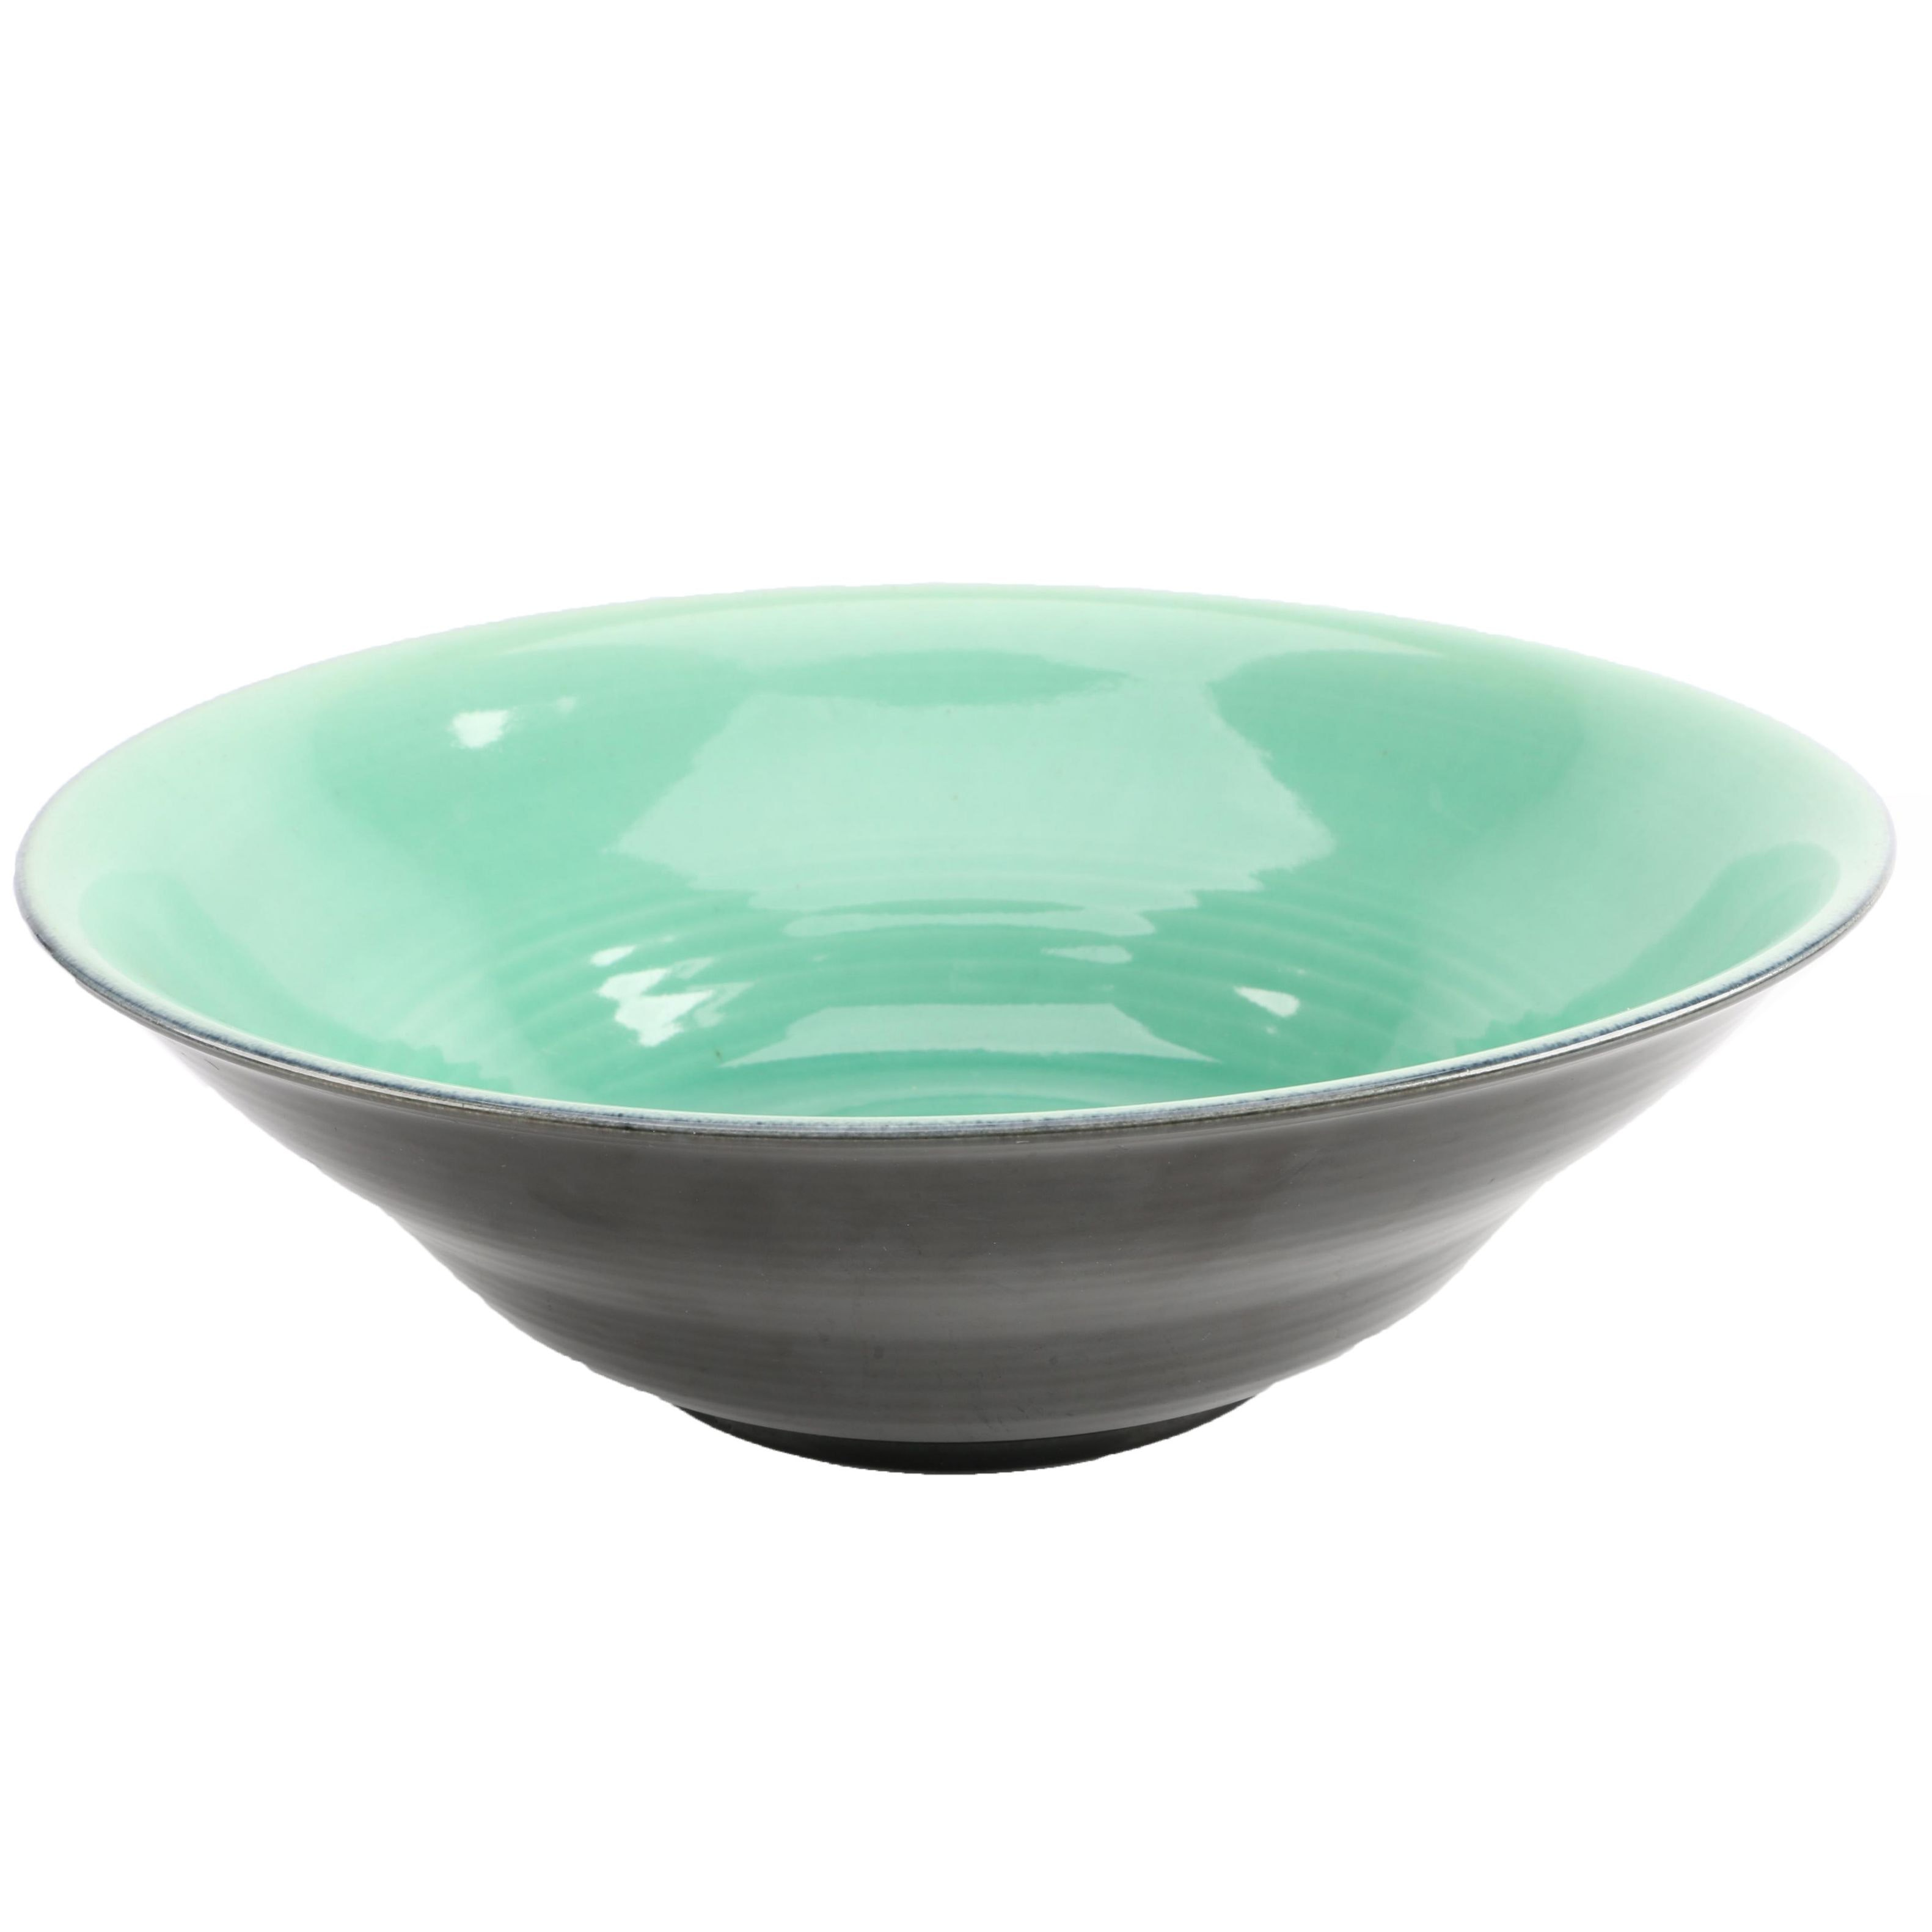 Rookwood 1922 Bowl